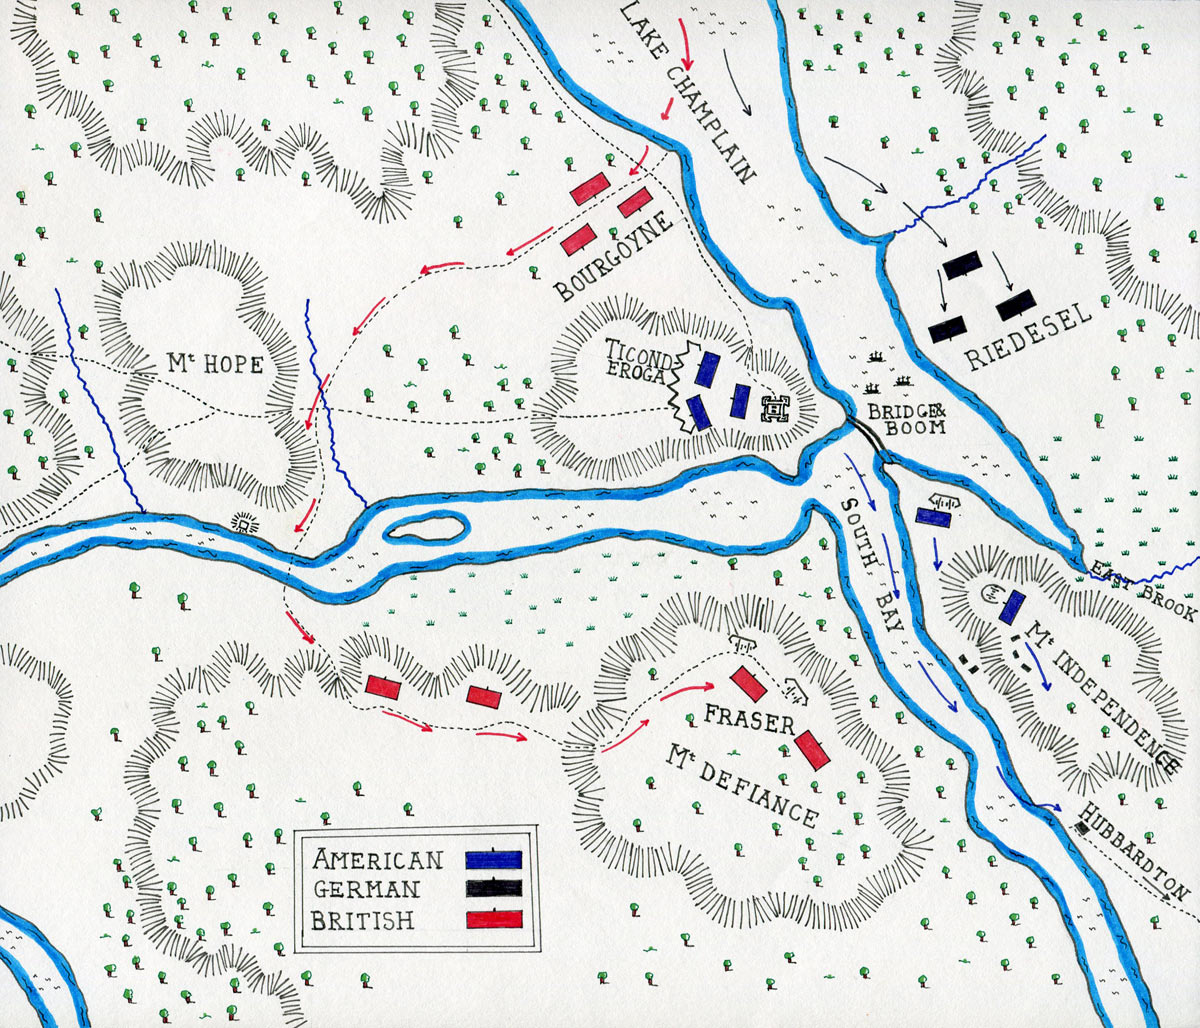 Map of the Battle of Fort Ticonderoga on 6th July 1777 in the American Revolutionary War: map by John Fawkes